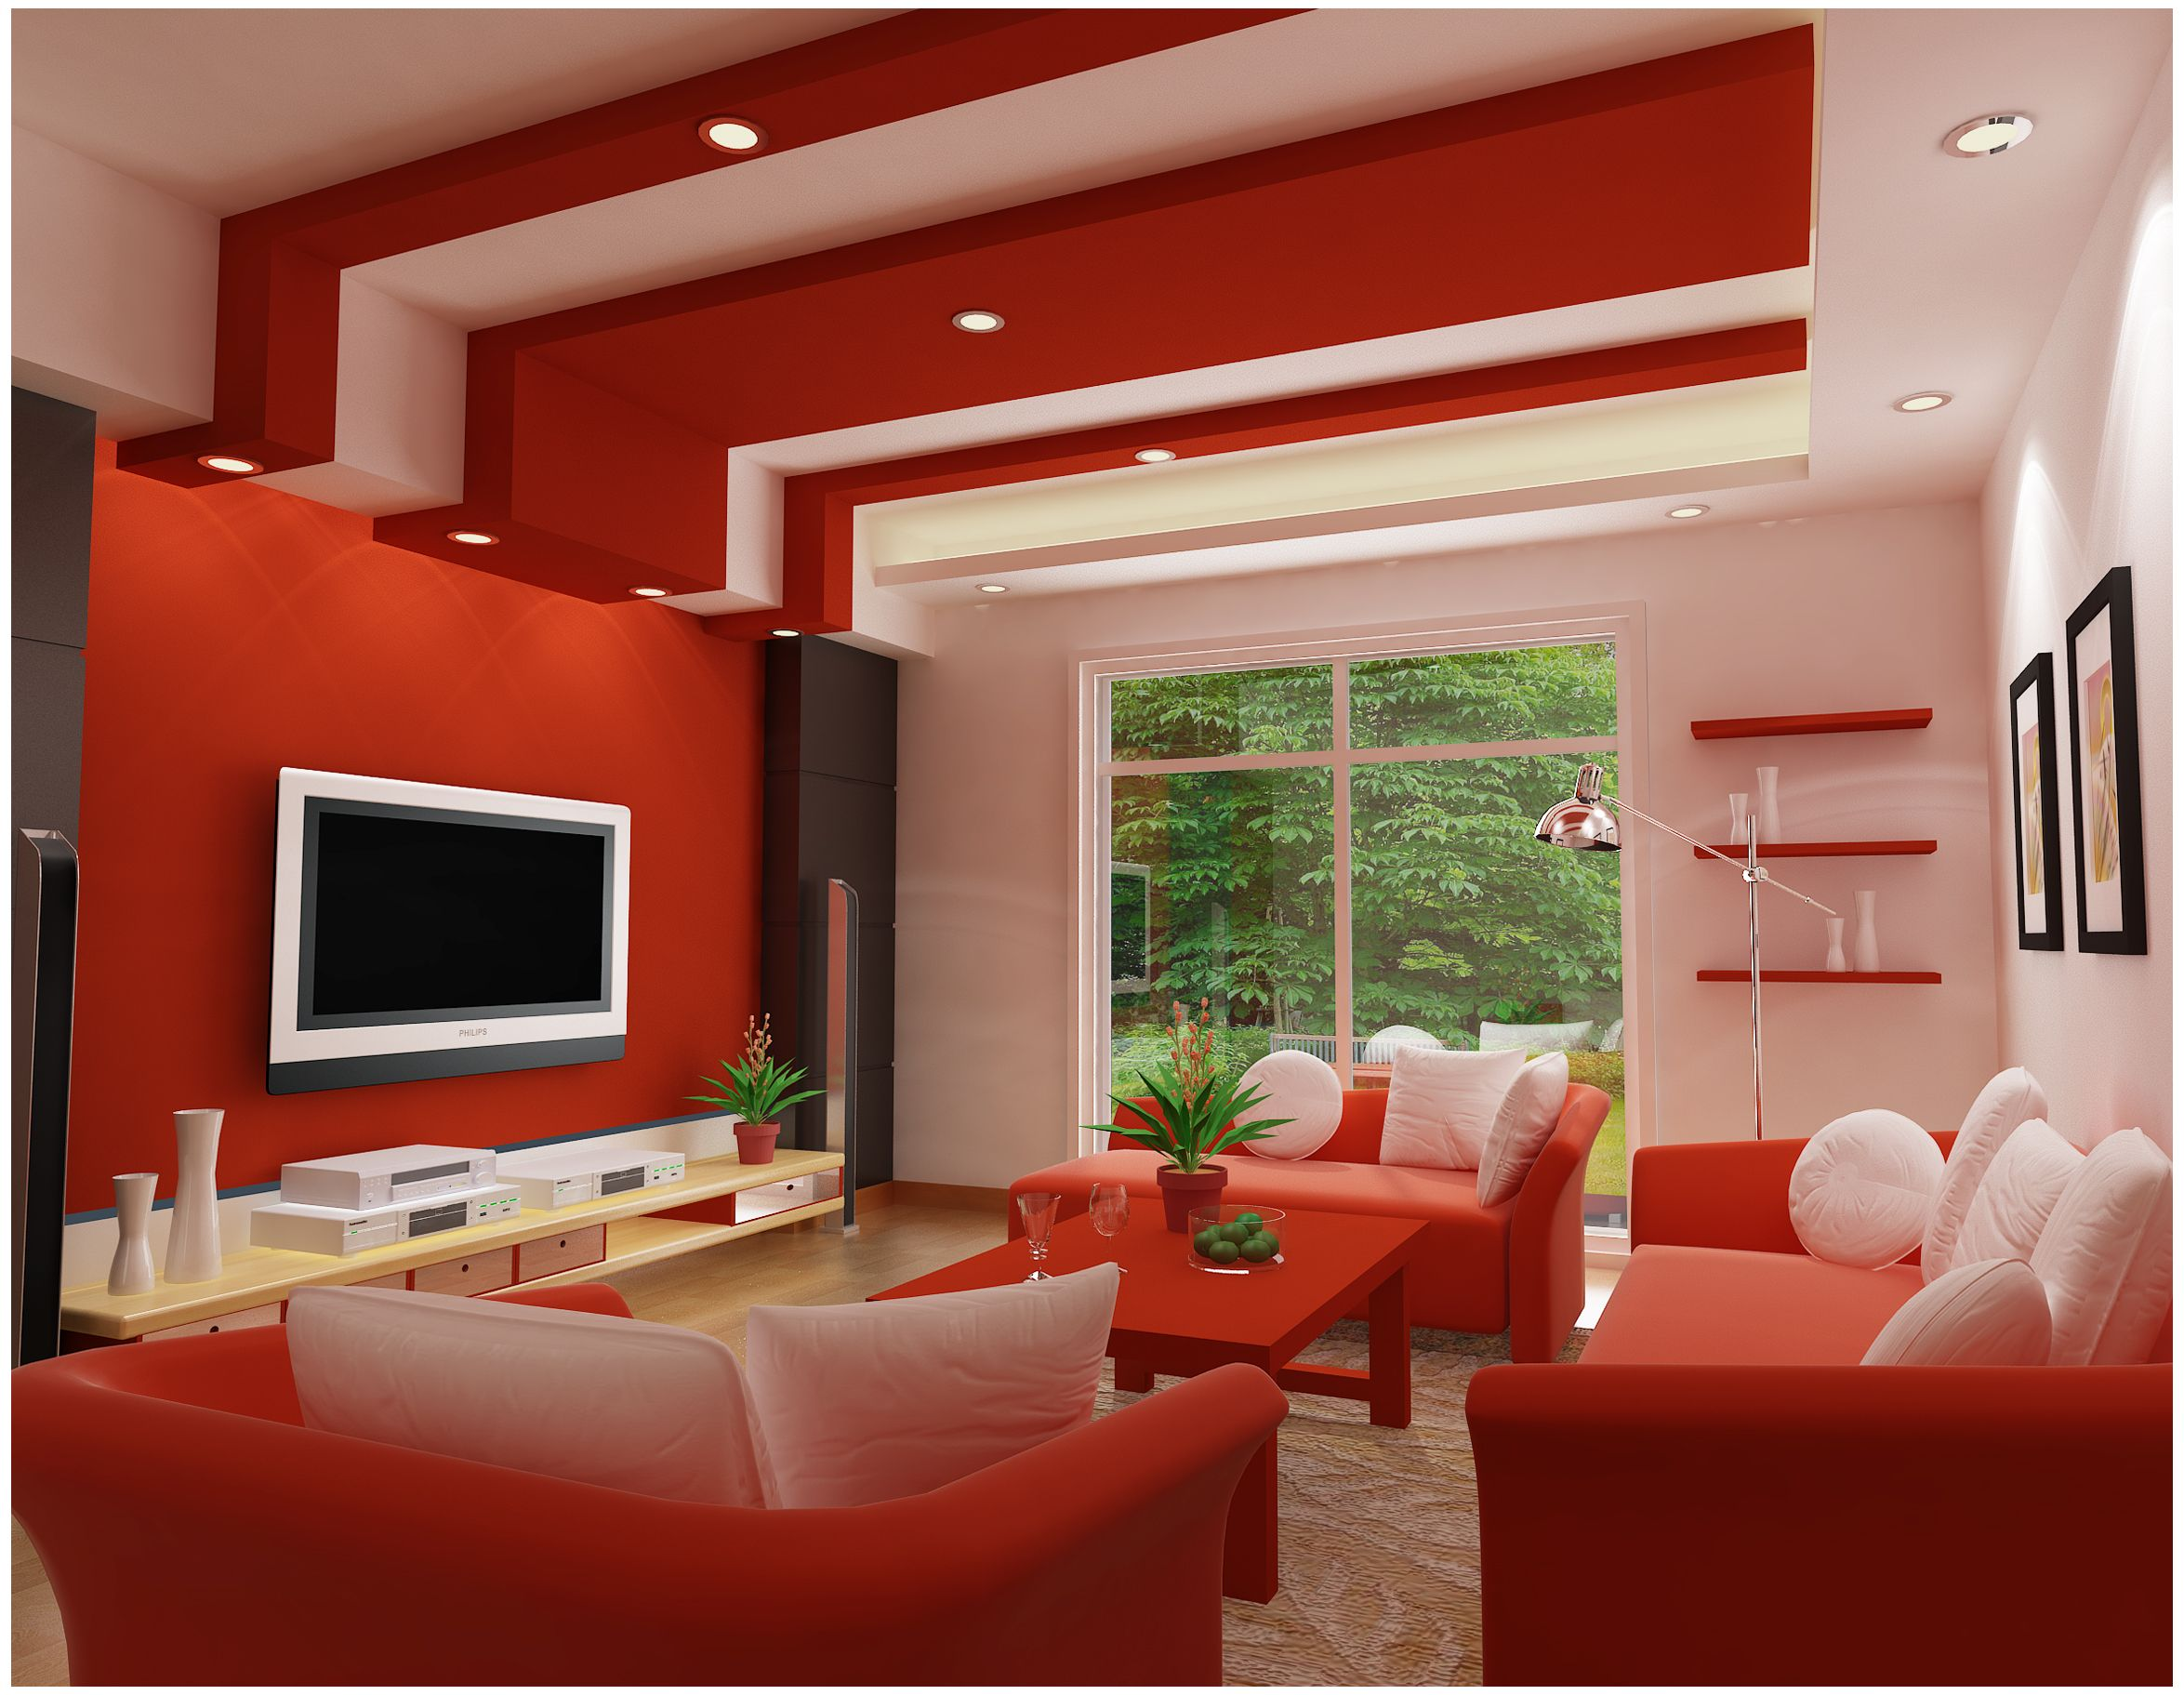 Finesse interior design home decor - Choose The Array Of Classy Cheerful Adventurous And Artistic Ceiling Designs To Add Finesse To Your Living Room And Create An Enviable First Impression